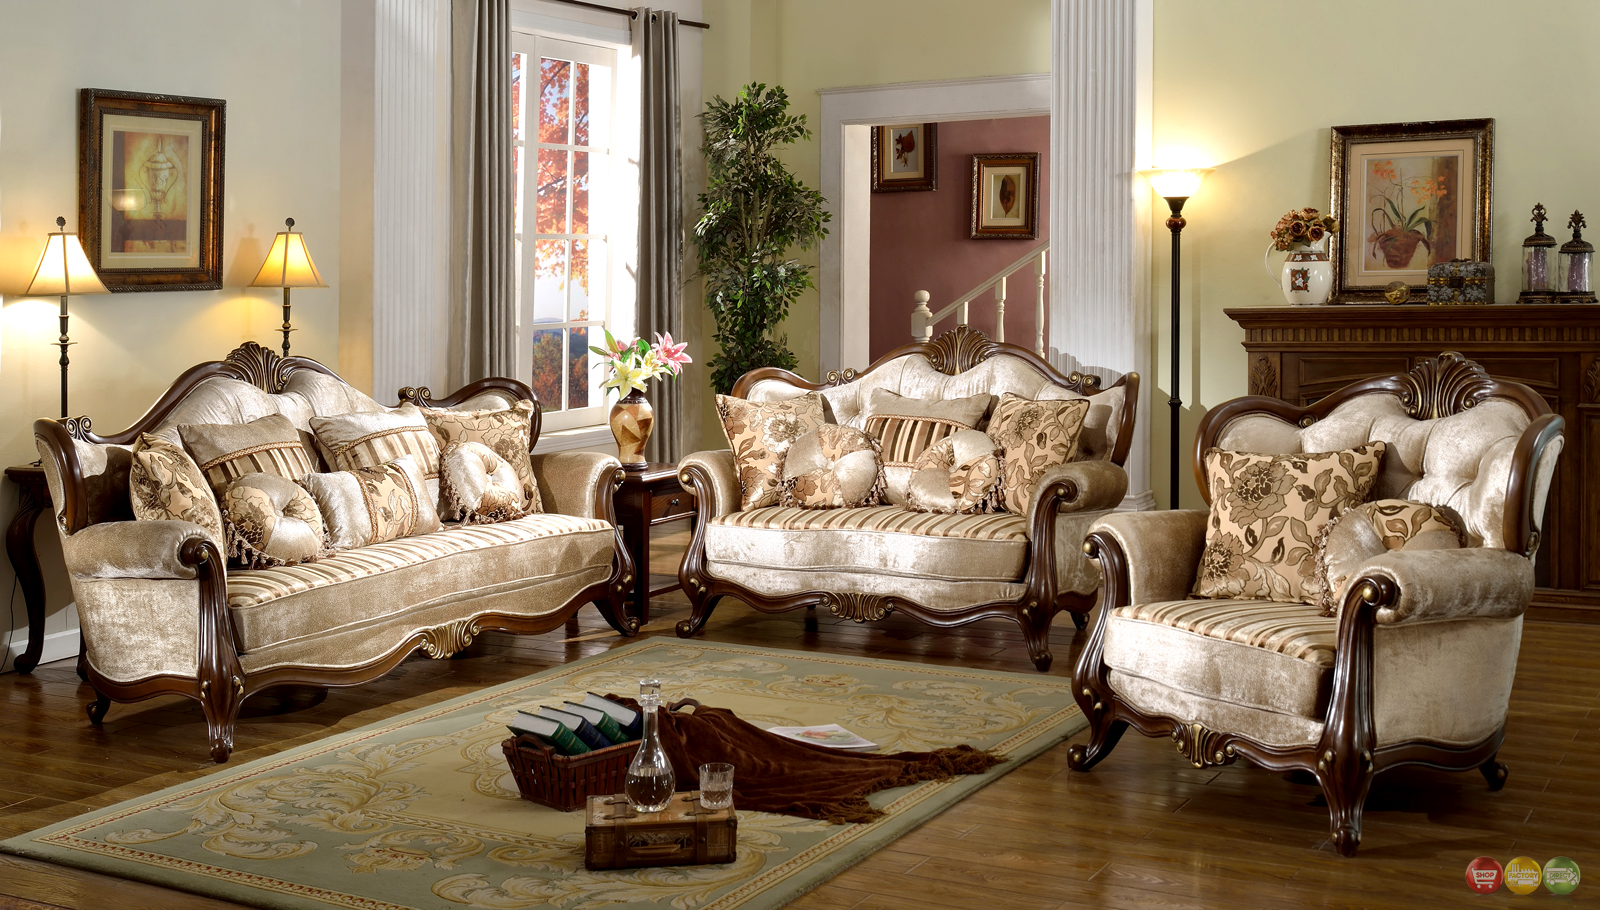 Queen anne living room furniture - French Provincial Formal Antique Style Living Room Furniture Set Beige Chenille